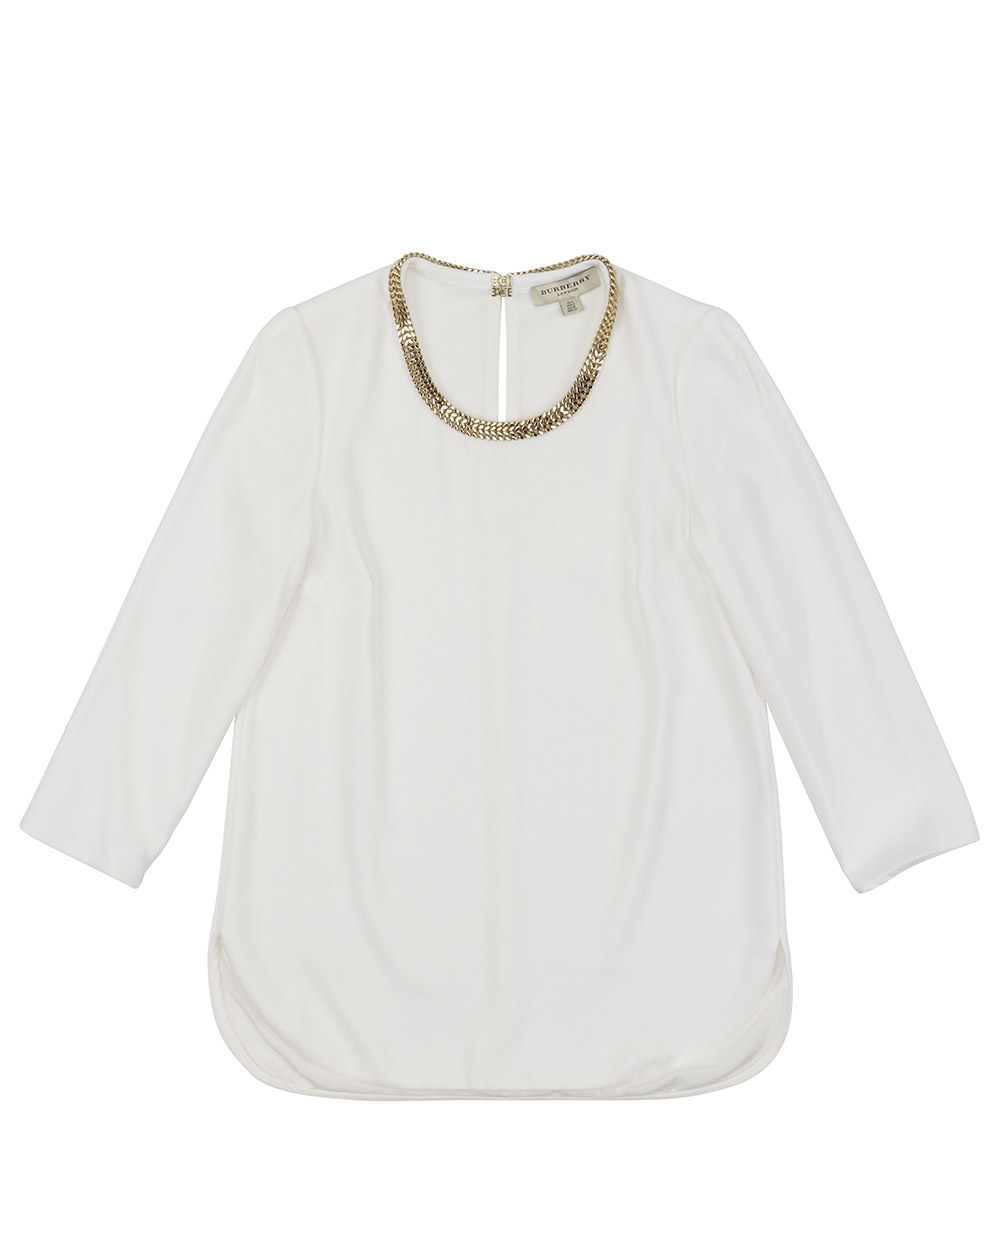 Metal Chain Crew Neck T-Shirt